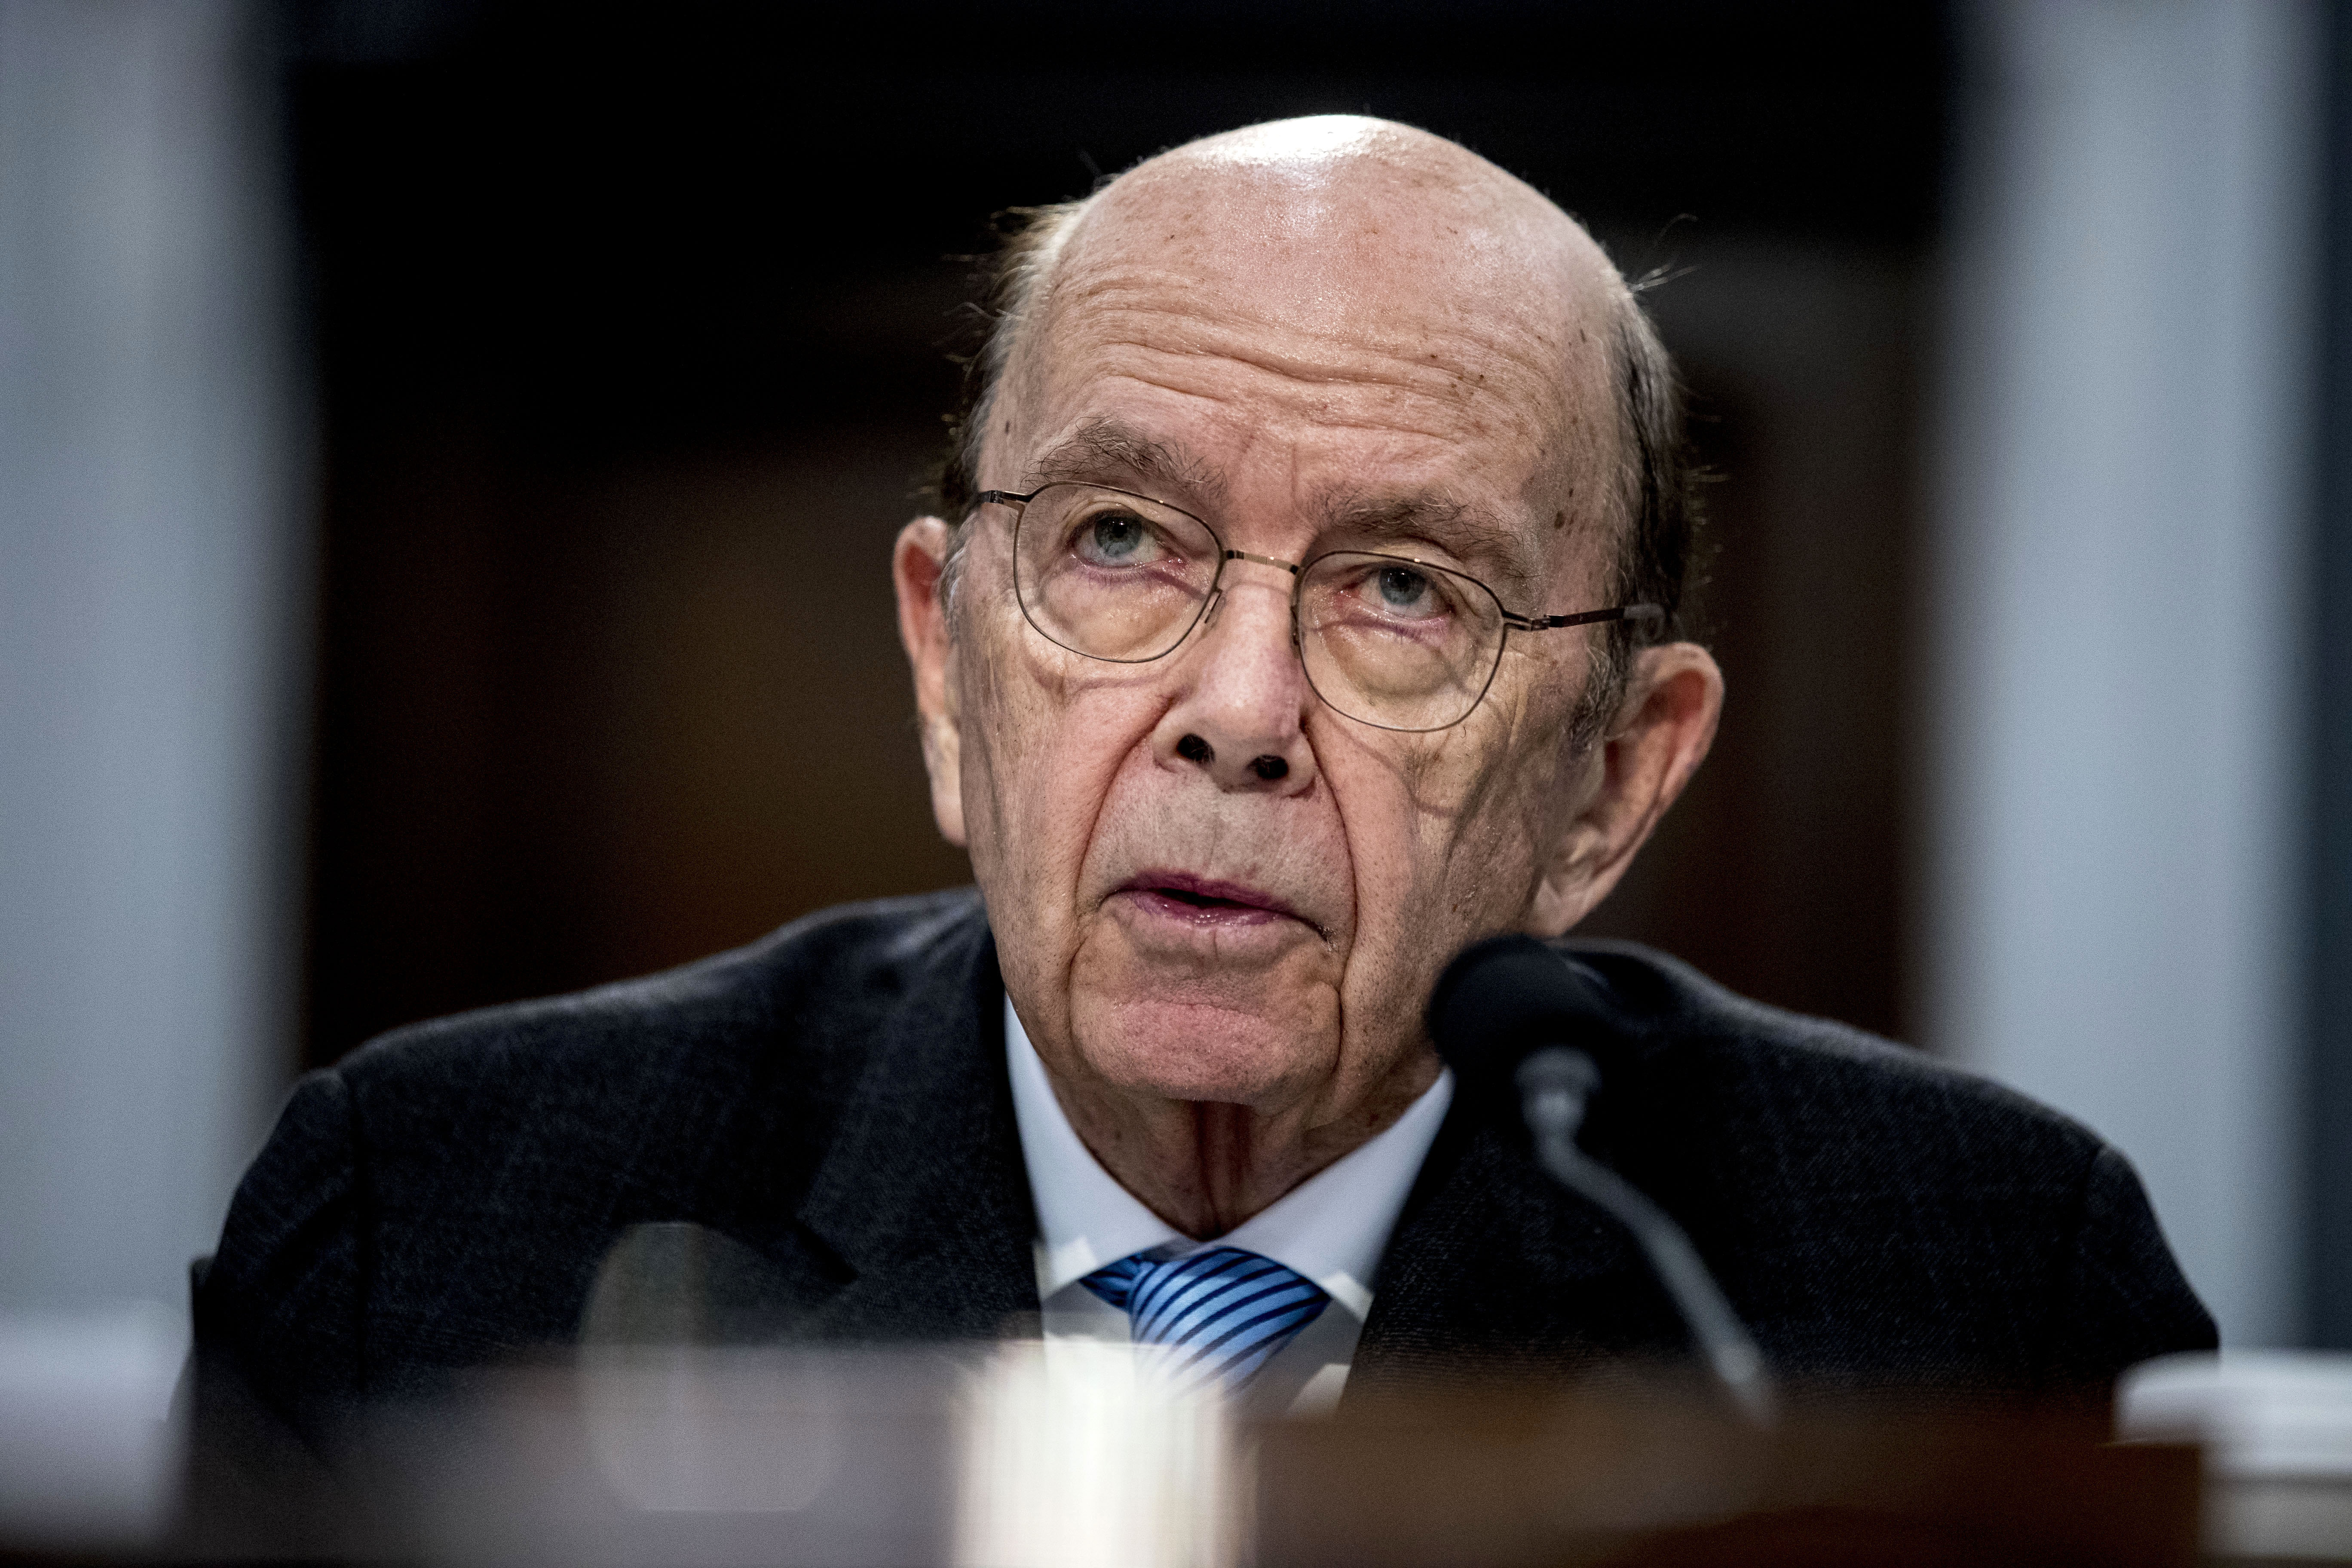 Wilbur Ross, United States commerce secretary, testifies in Washington, DC, on March 10.